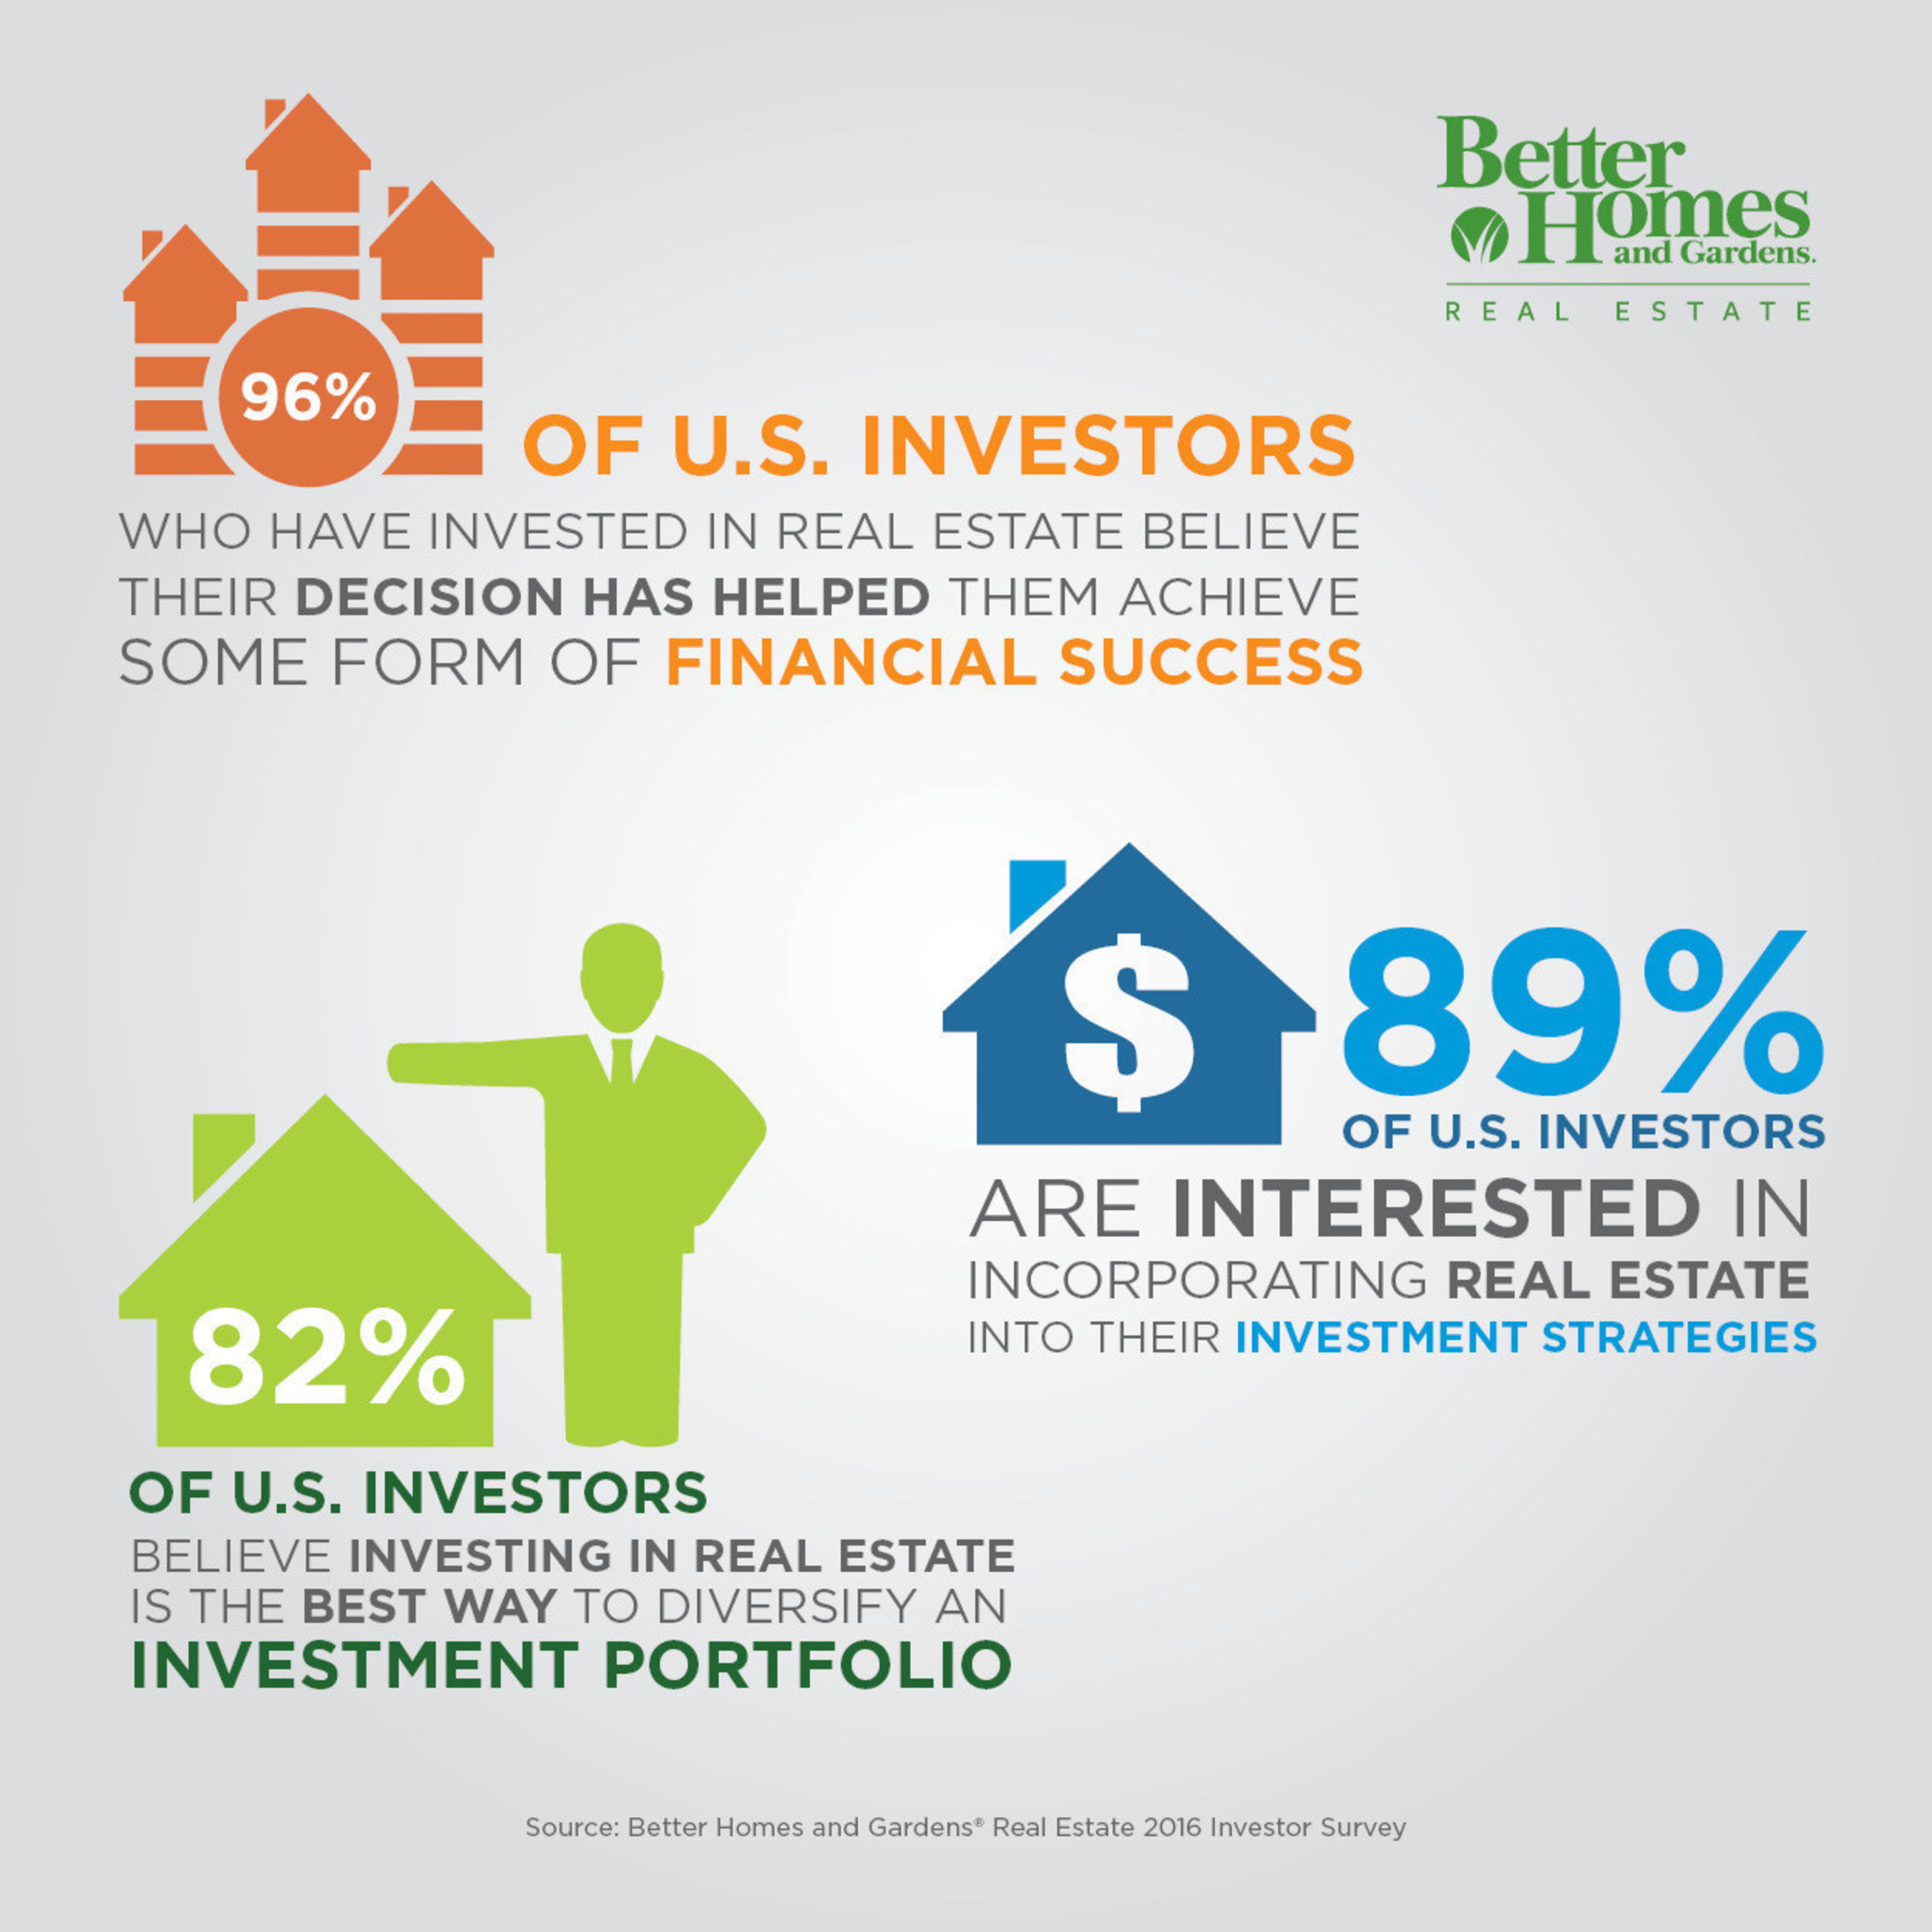 Real estate seen as viable investment strategy according to new consumer survey by Better Homes and Gardens Real Estate (http://bhgrealestateblog.com)